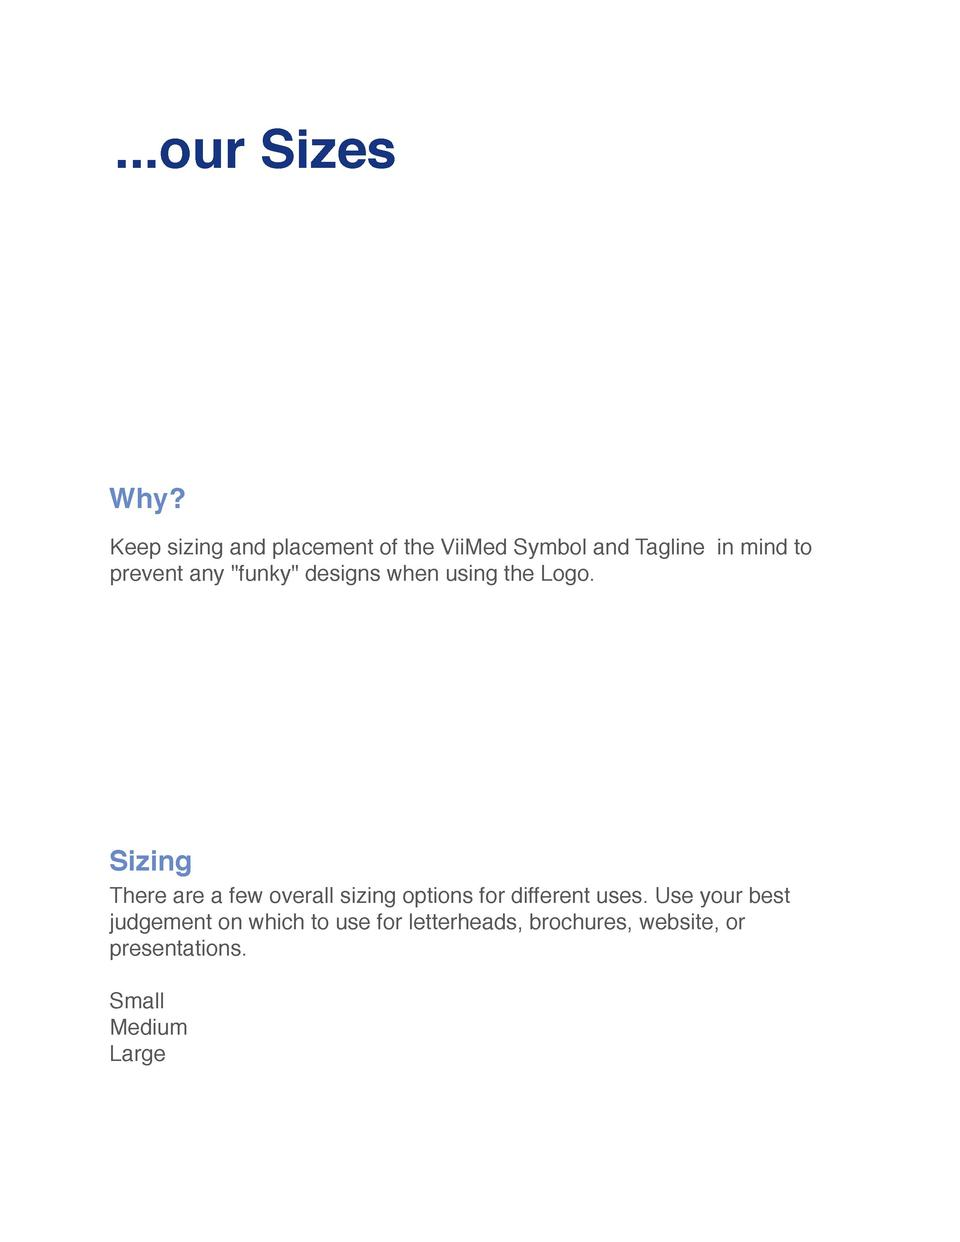 ...our Sizes  Why  Keep sizing and placement of the ViiMed Symbol and Tagline in mind to prevent any  funky  designs when ...